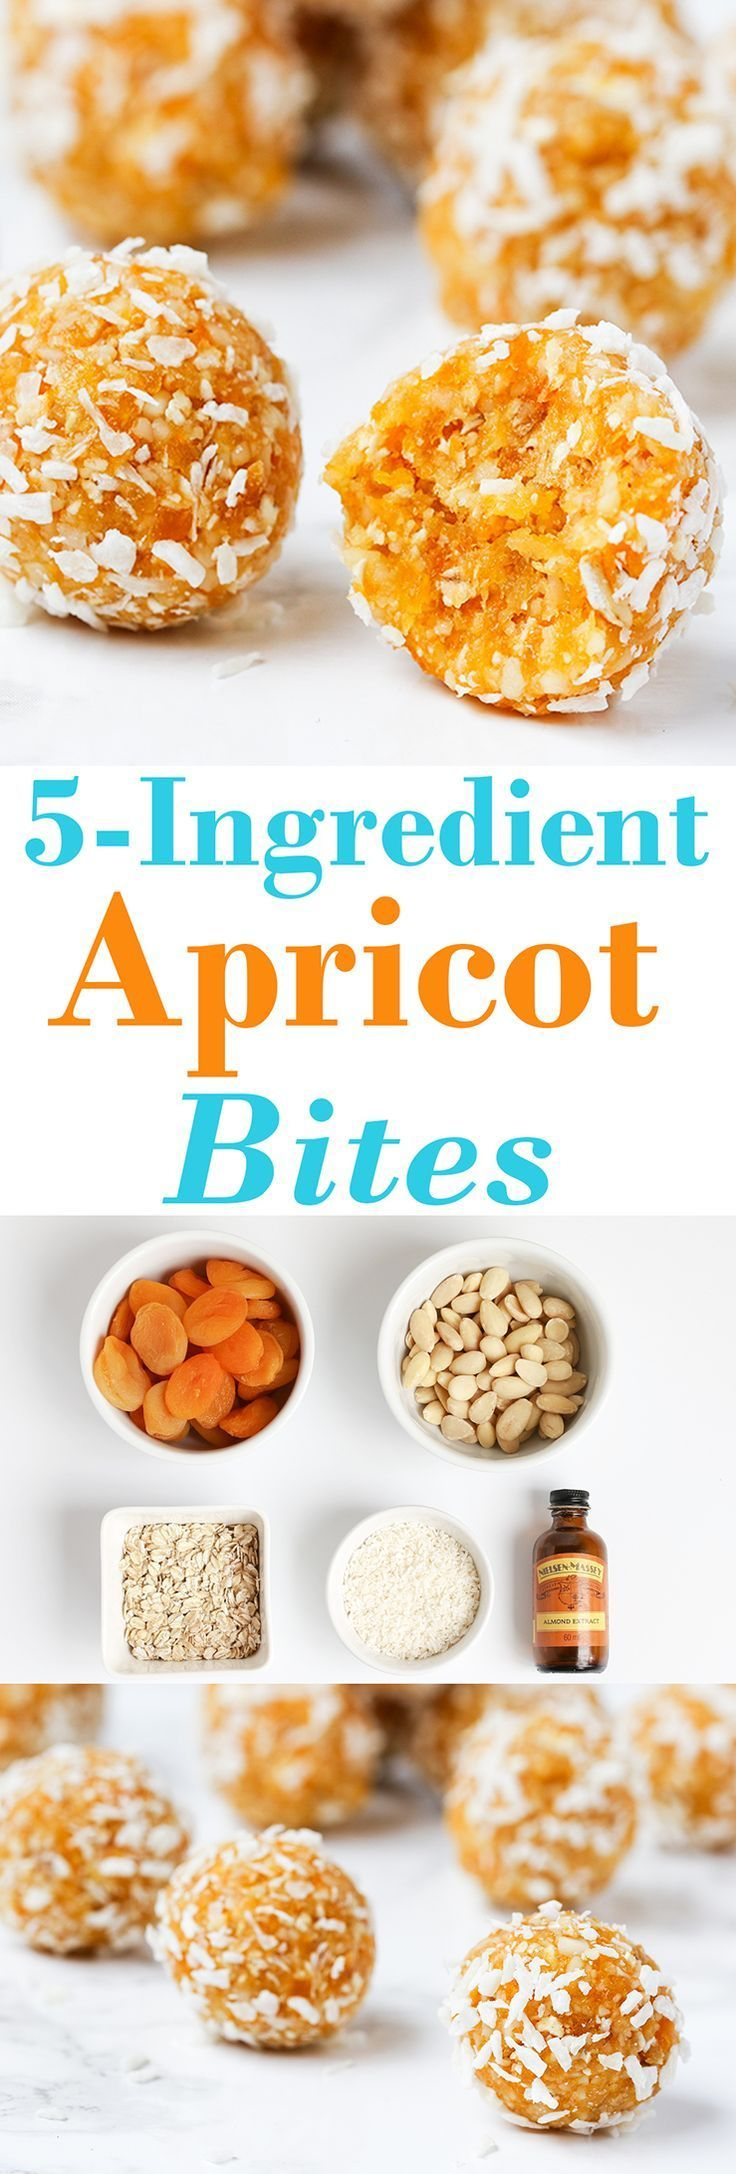 Sweet Apricot bites.  These delicious bites only take 15 minutes  Enjoy these tidbits: almonds, rolled oats, almond extract, dried apricots, shredded coconut.  #Appetizers #CleanEating Sherman Financial Group